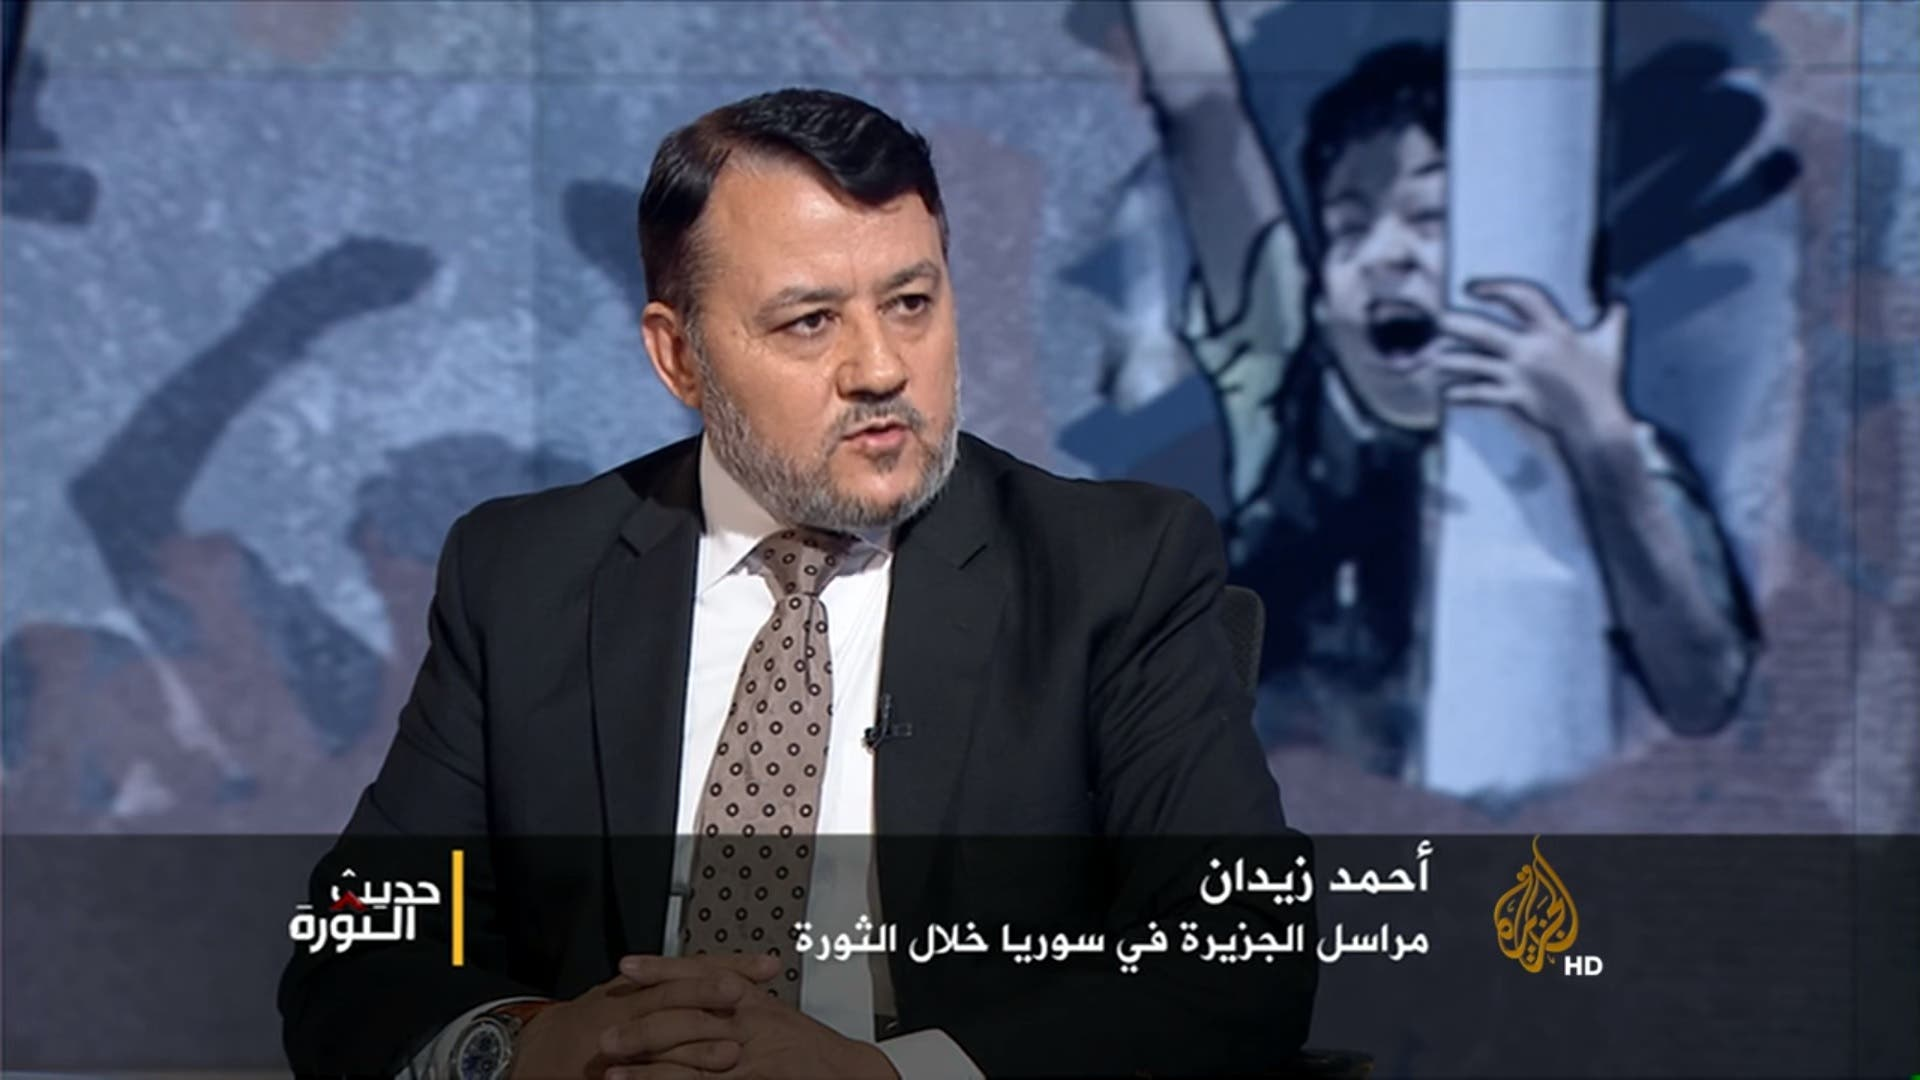 What's the story behind an Al Jazeera correspondent's ties with extremists?